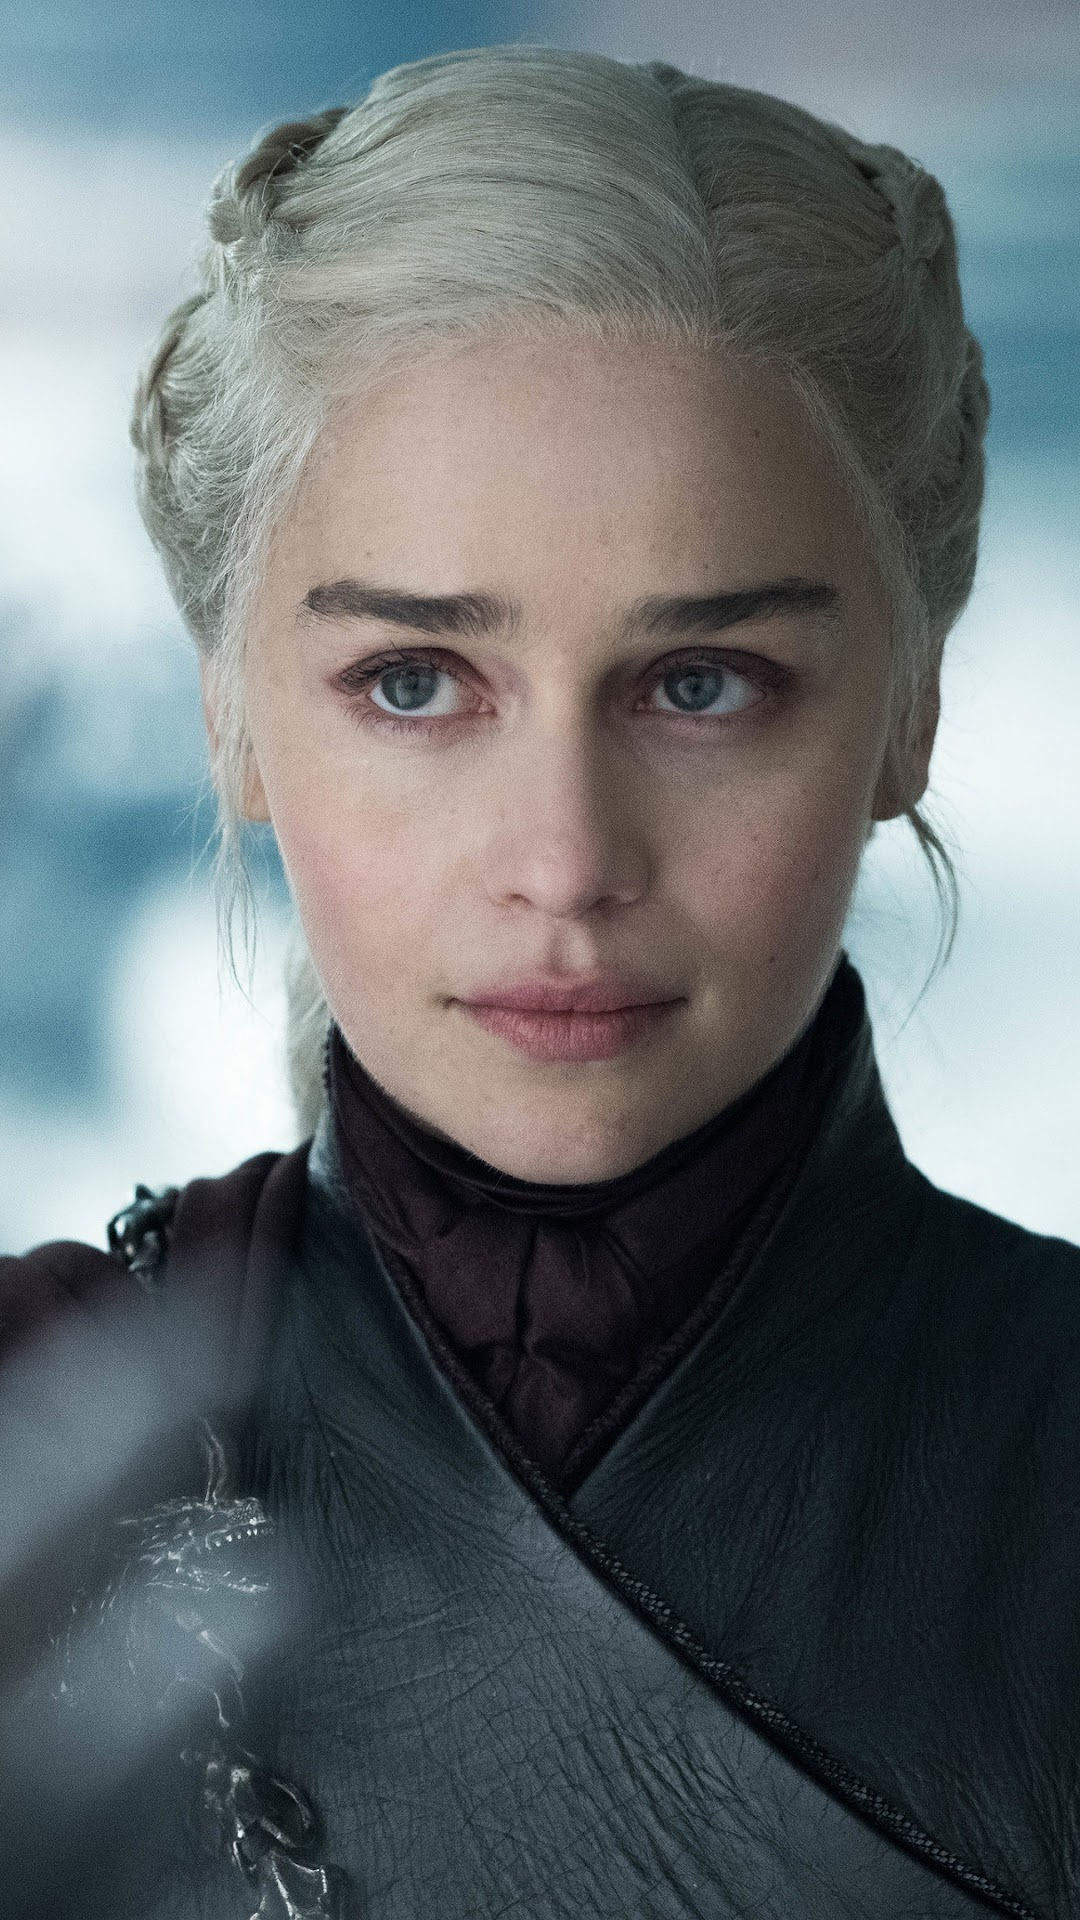 Daenerys Targaryen Game Of Thrones Season 8 4k Wallpaper 100